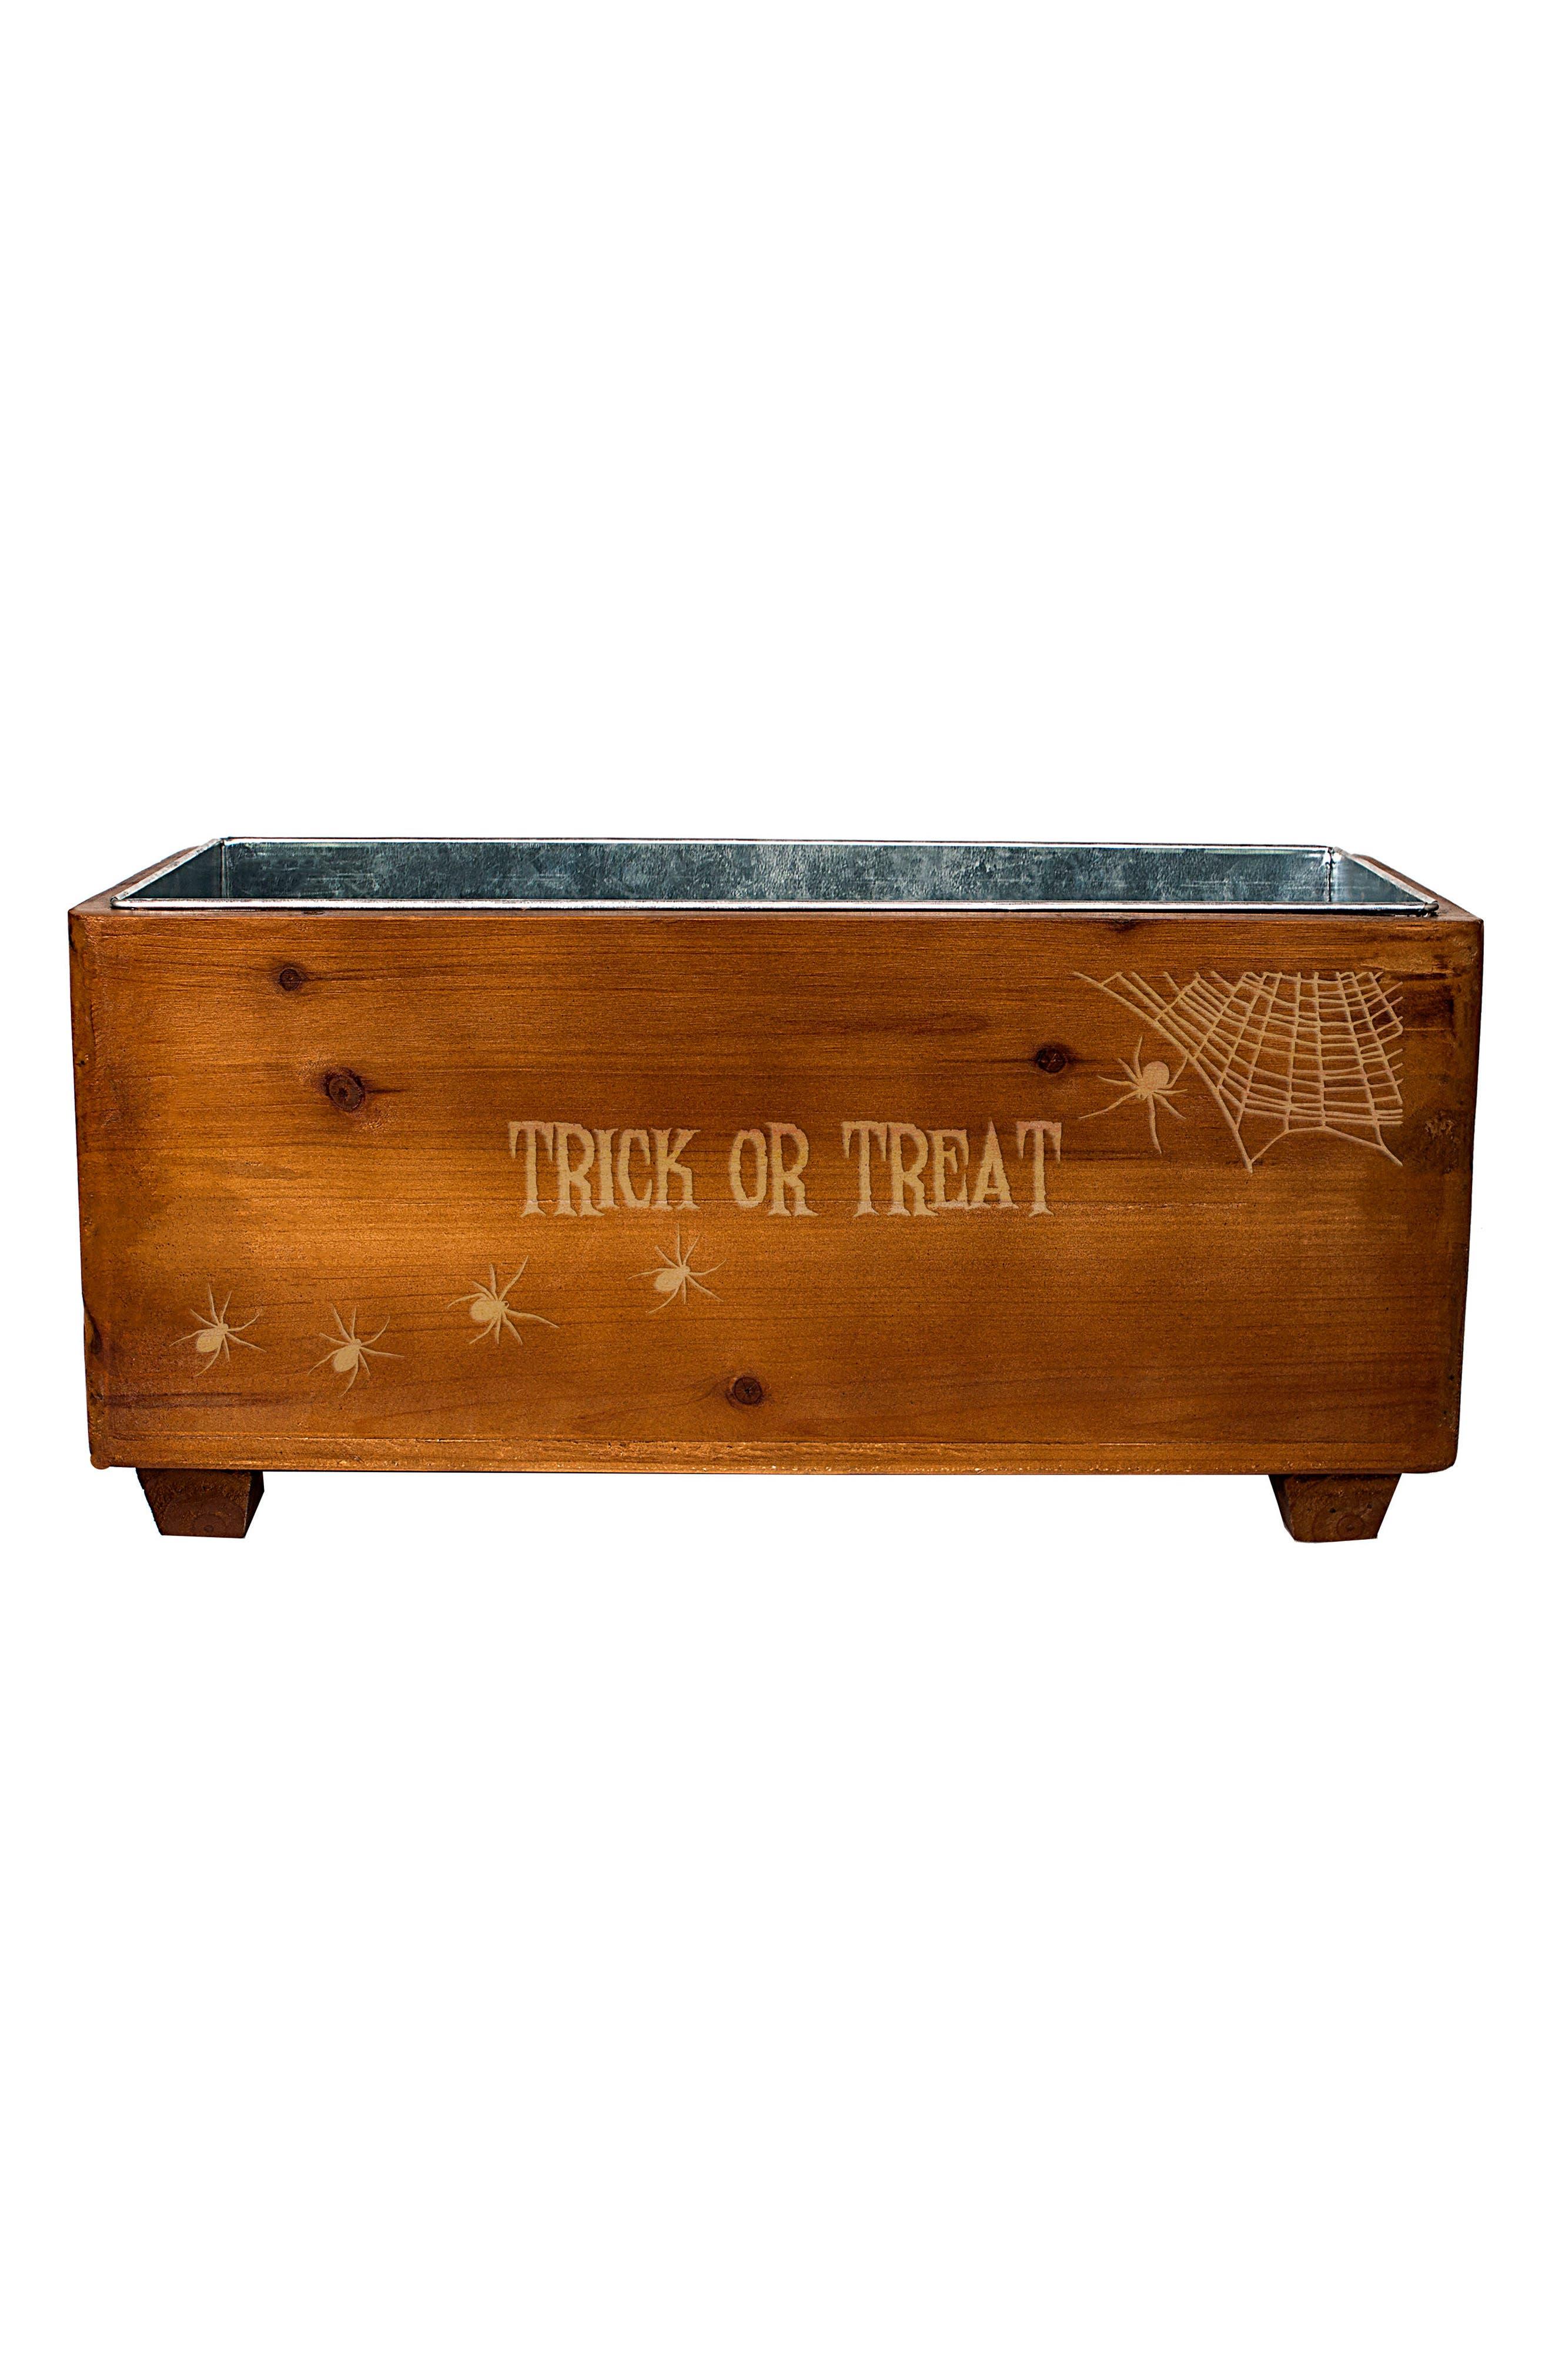 Trick or Treat Wood Wine Trough,                         Main,                         color, 200